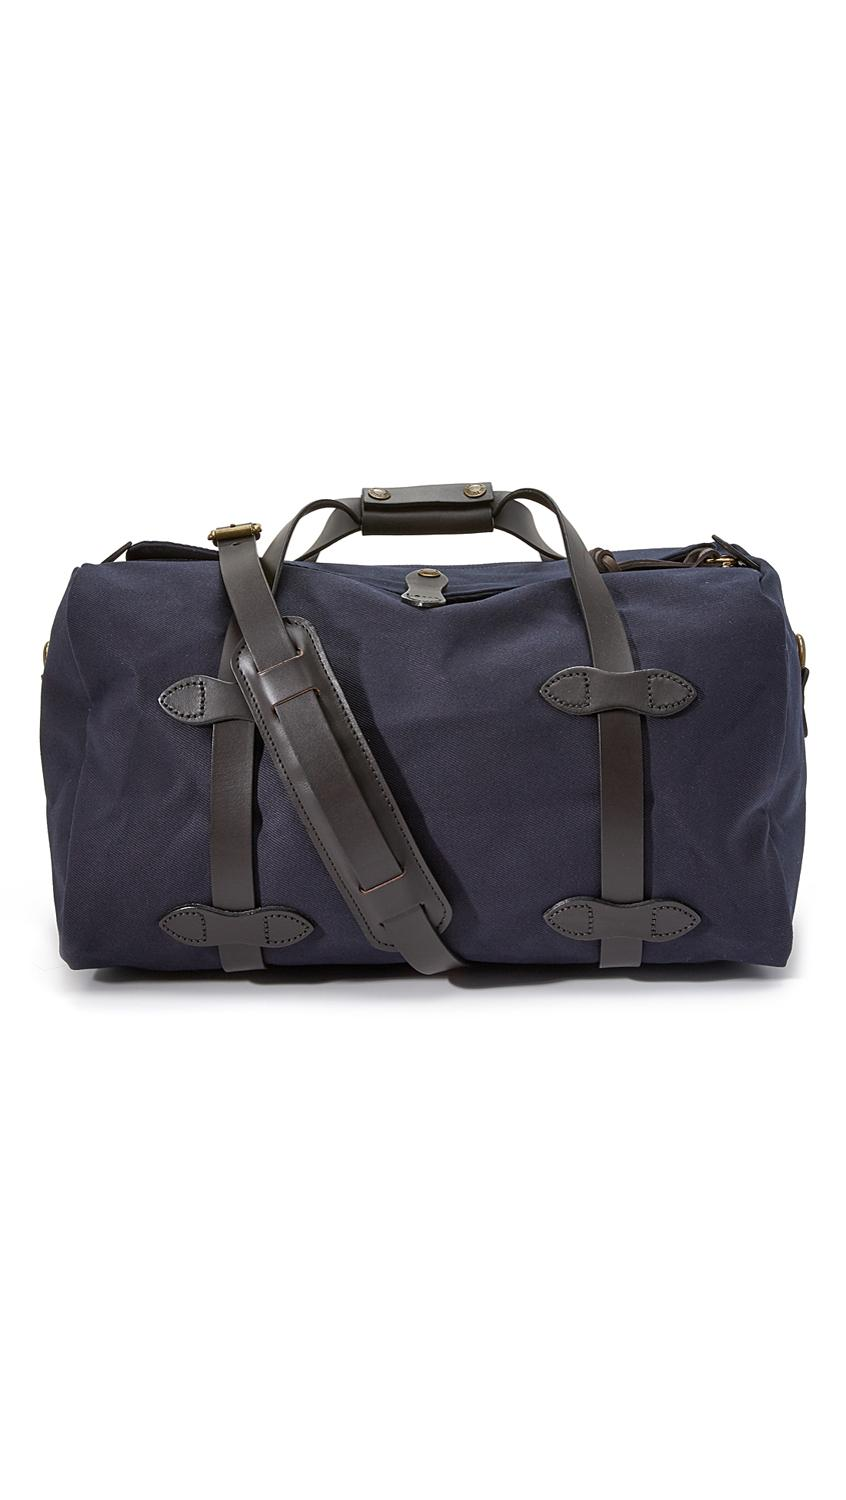 Free shipping BOTH ways on Duffle Bags, Men, Small (17in to 22in), from our vast selection of styles. Fast delivery, and 24/7/ real-person service with a smile. Click or call